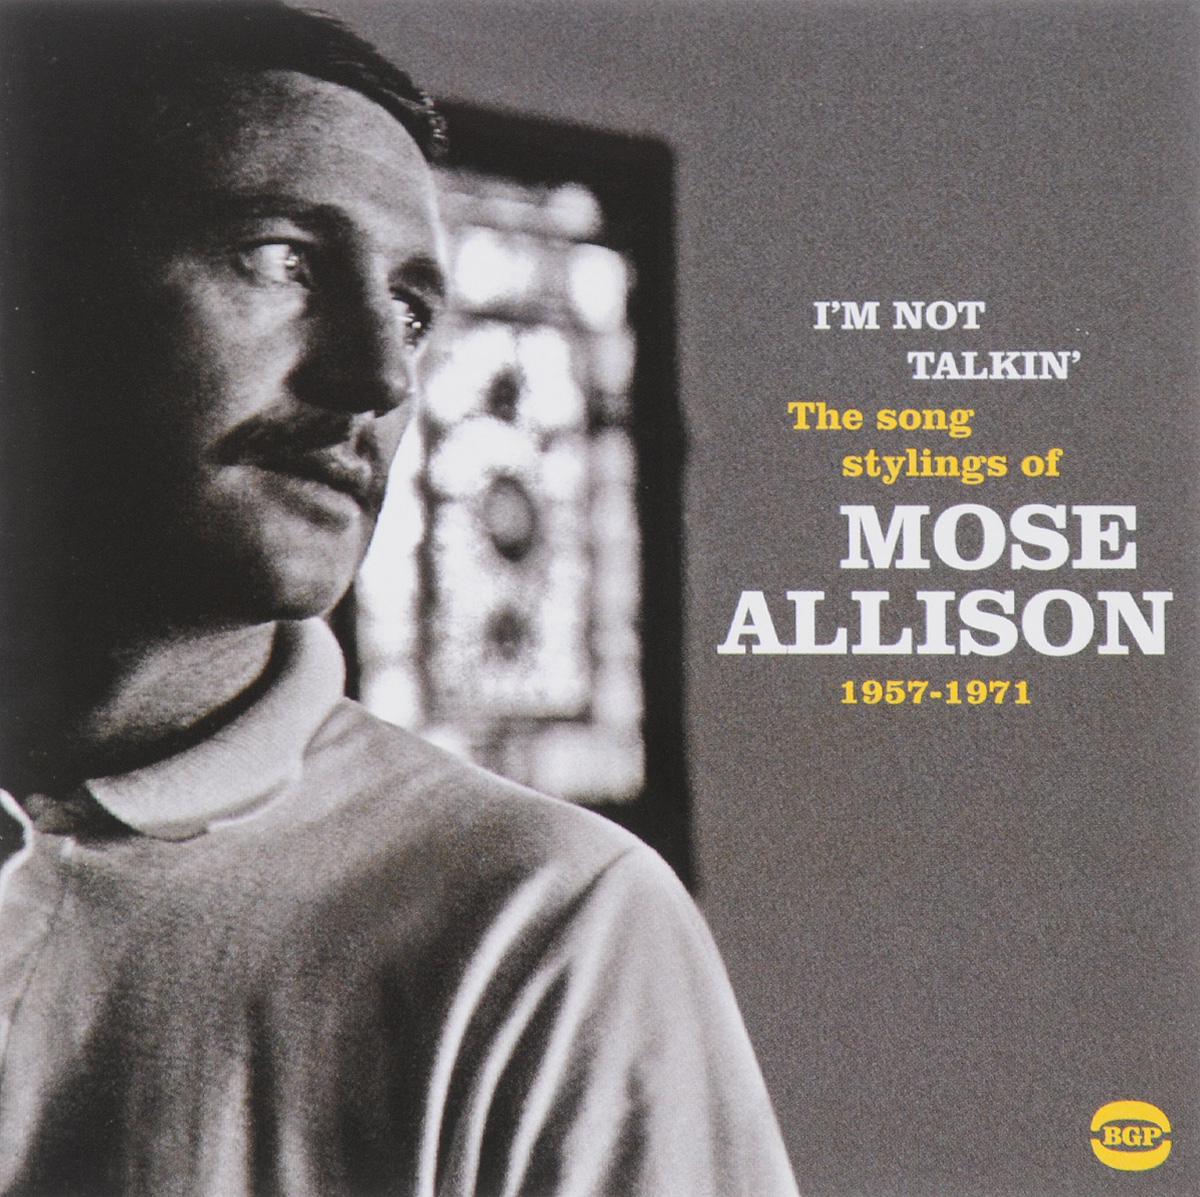 Моуз Эллисон Mose Allison. I'm Not Talkin'. The Songs Stylings Of Mose Allison. 1957-1971 моуз эллисон mose allison transfiguration of hiram brown creek bank i love the life i live v 8 ford blues young man mose 2 cd